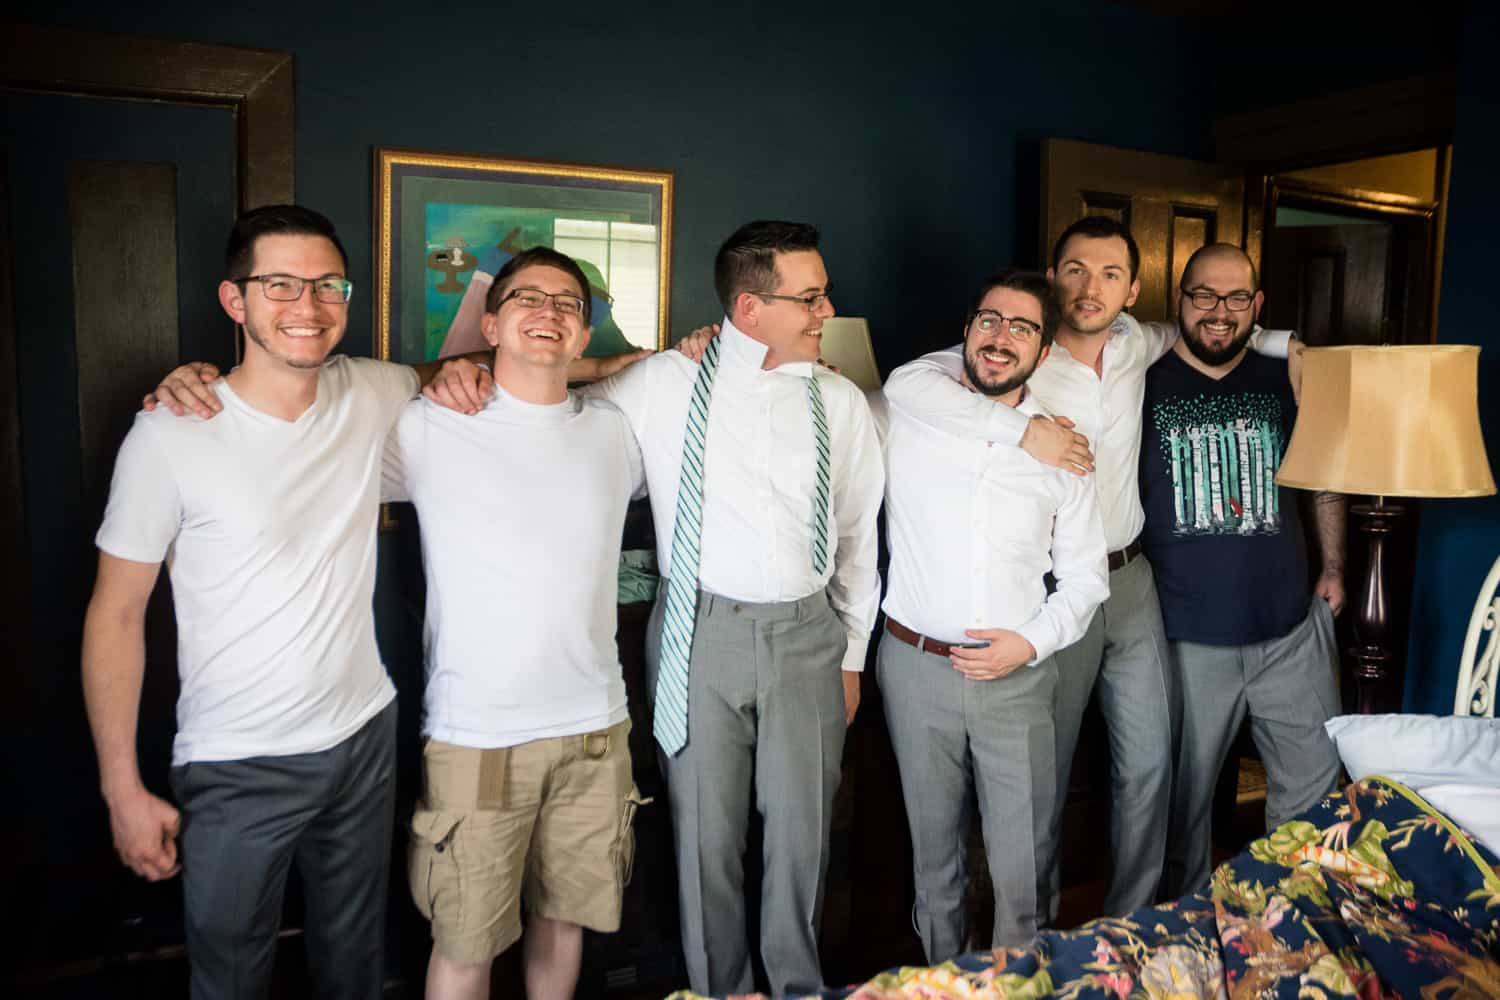 the groomsmen all line up with their arms around each other.